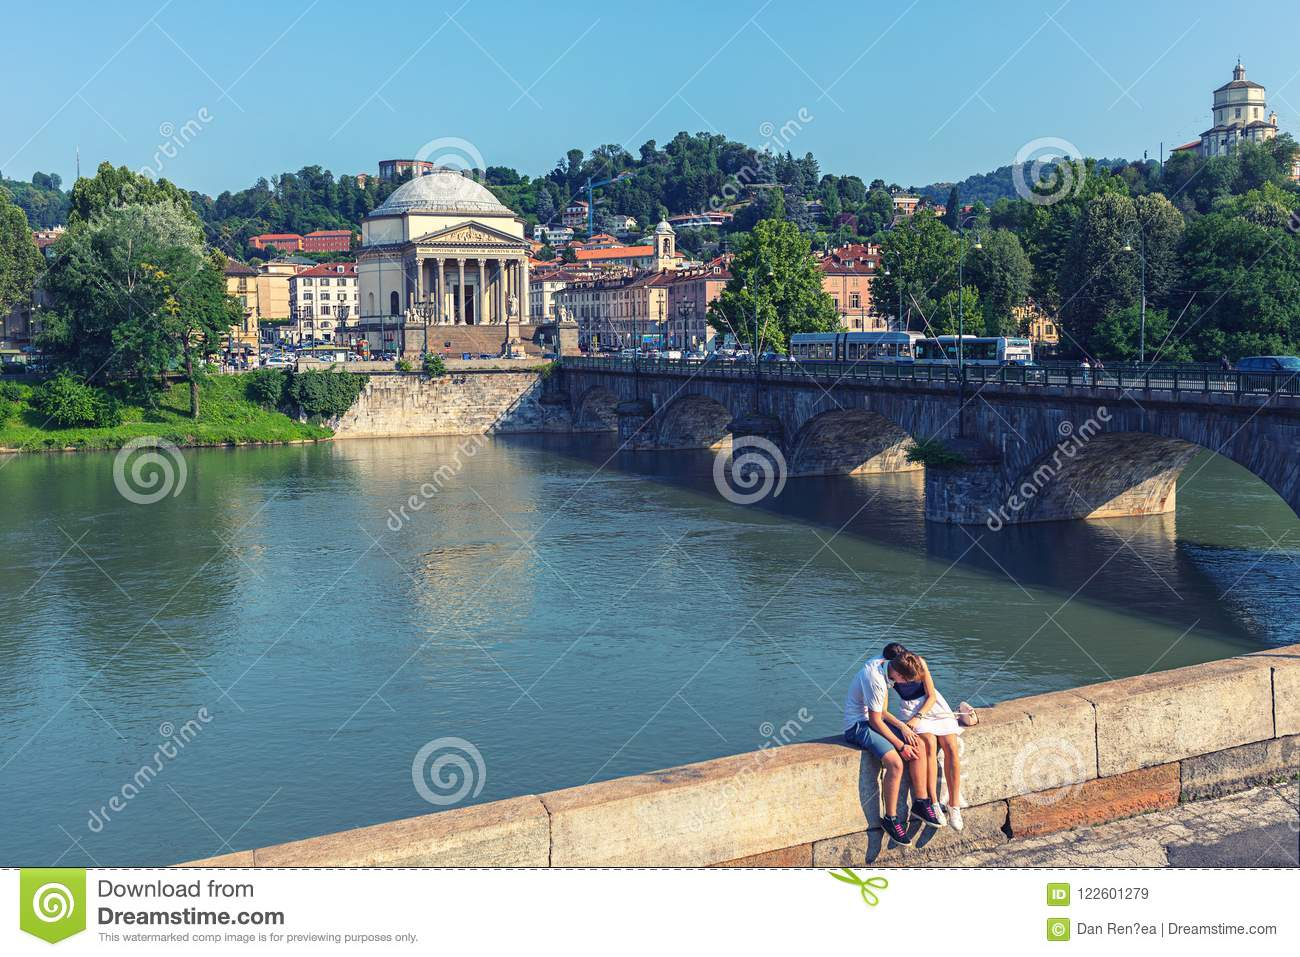 40a851c1e9 In love tourists couple relaxing on center of Torino Turin, Italy with  Vittorio Emanuele I bridge over Po river and the church of Gran Madre di  Dio, Turin, ...